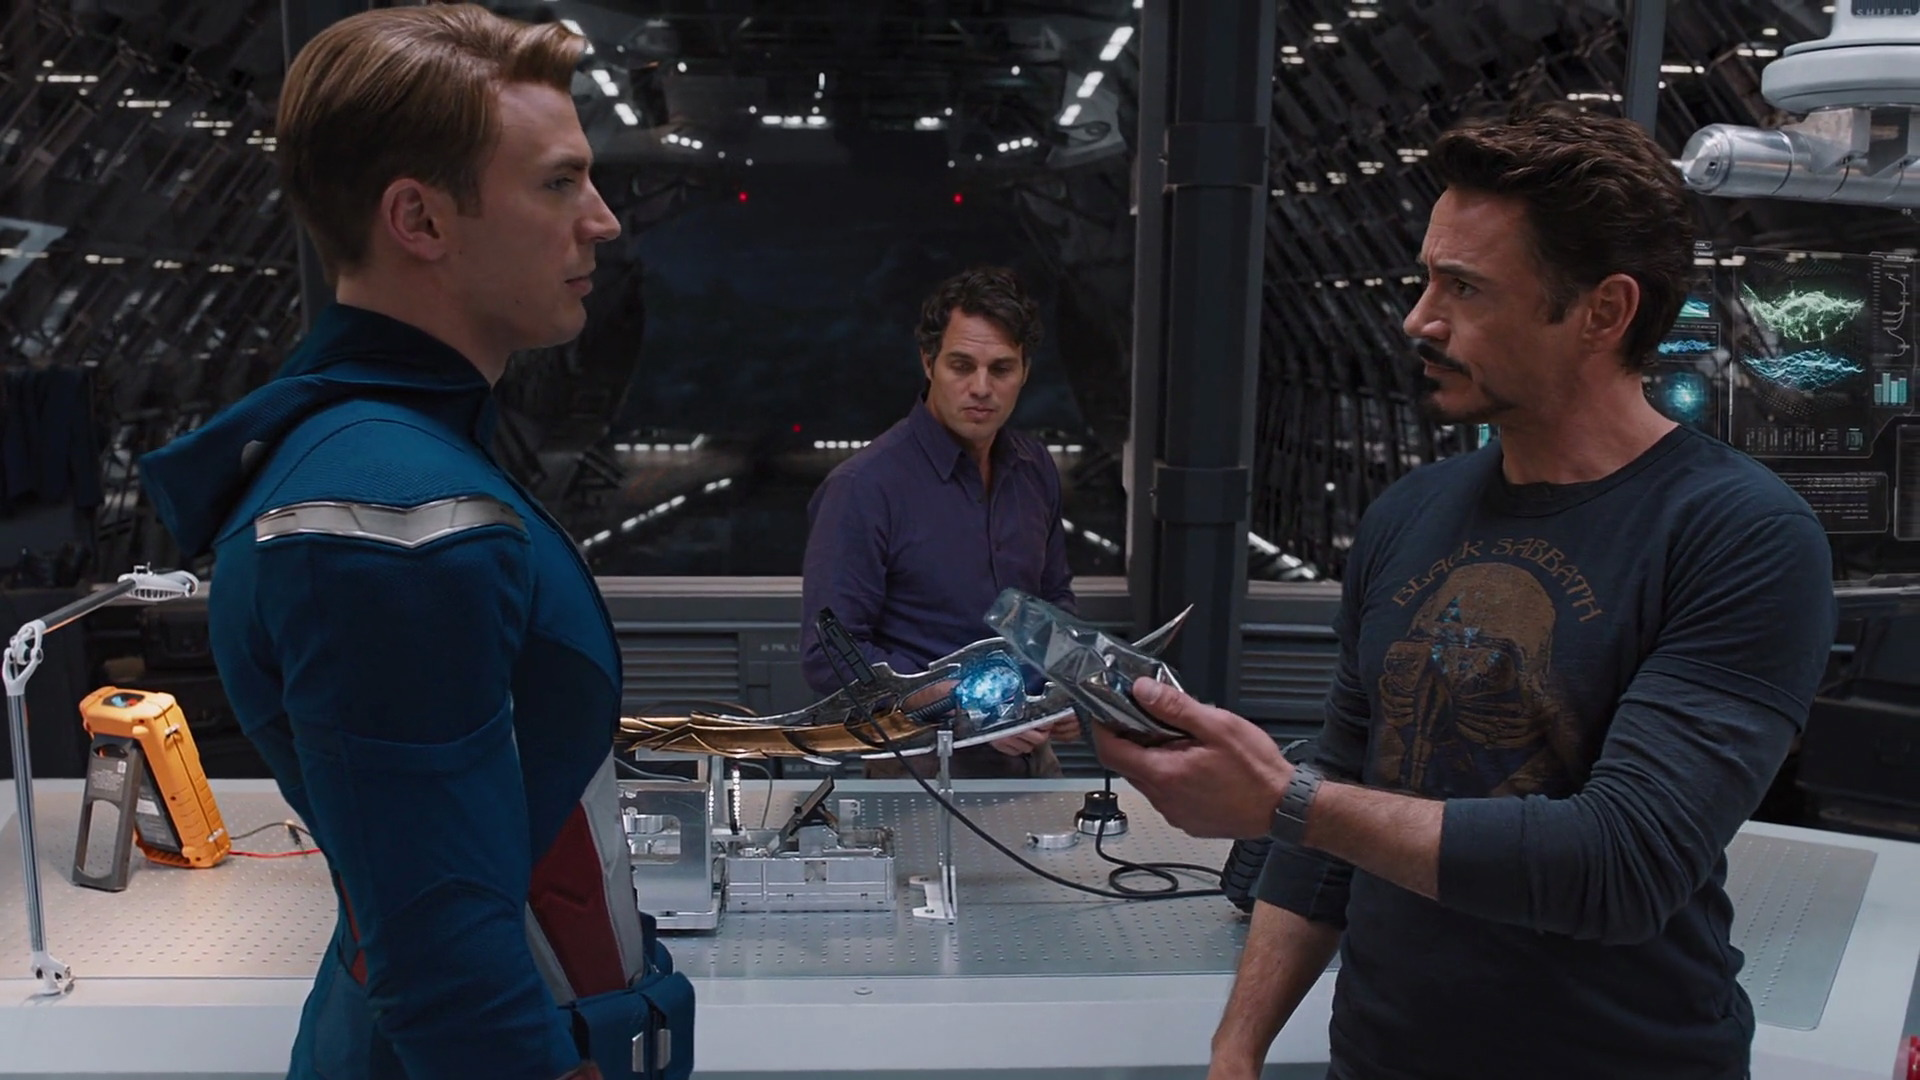 http://www.caps.media/201/2-avengers/full/avengers-movie-screencaps.com-6883.jpg